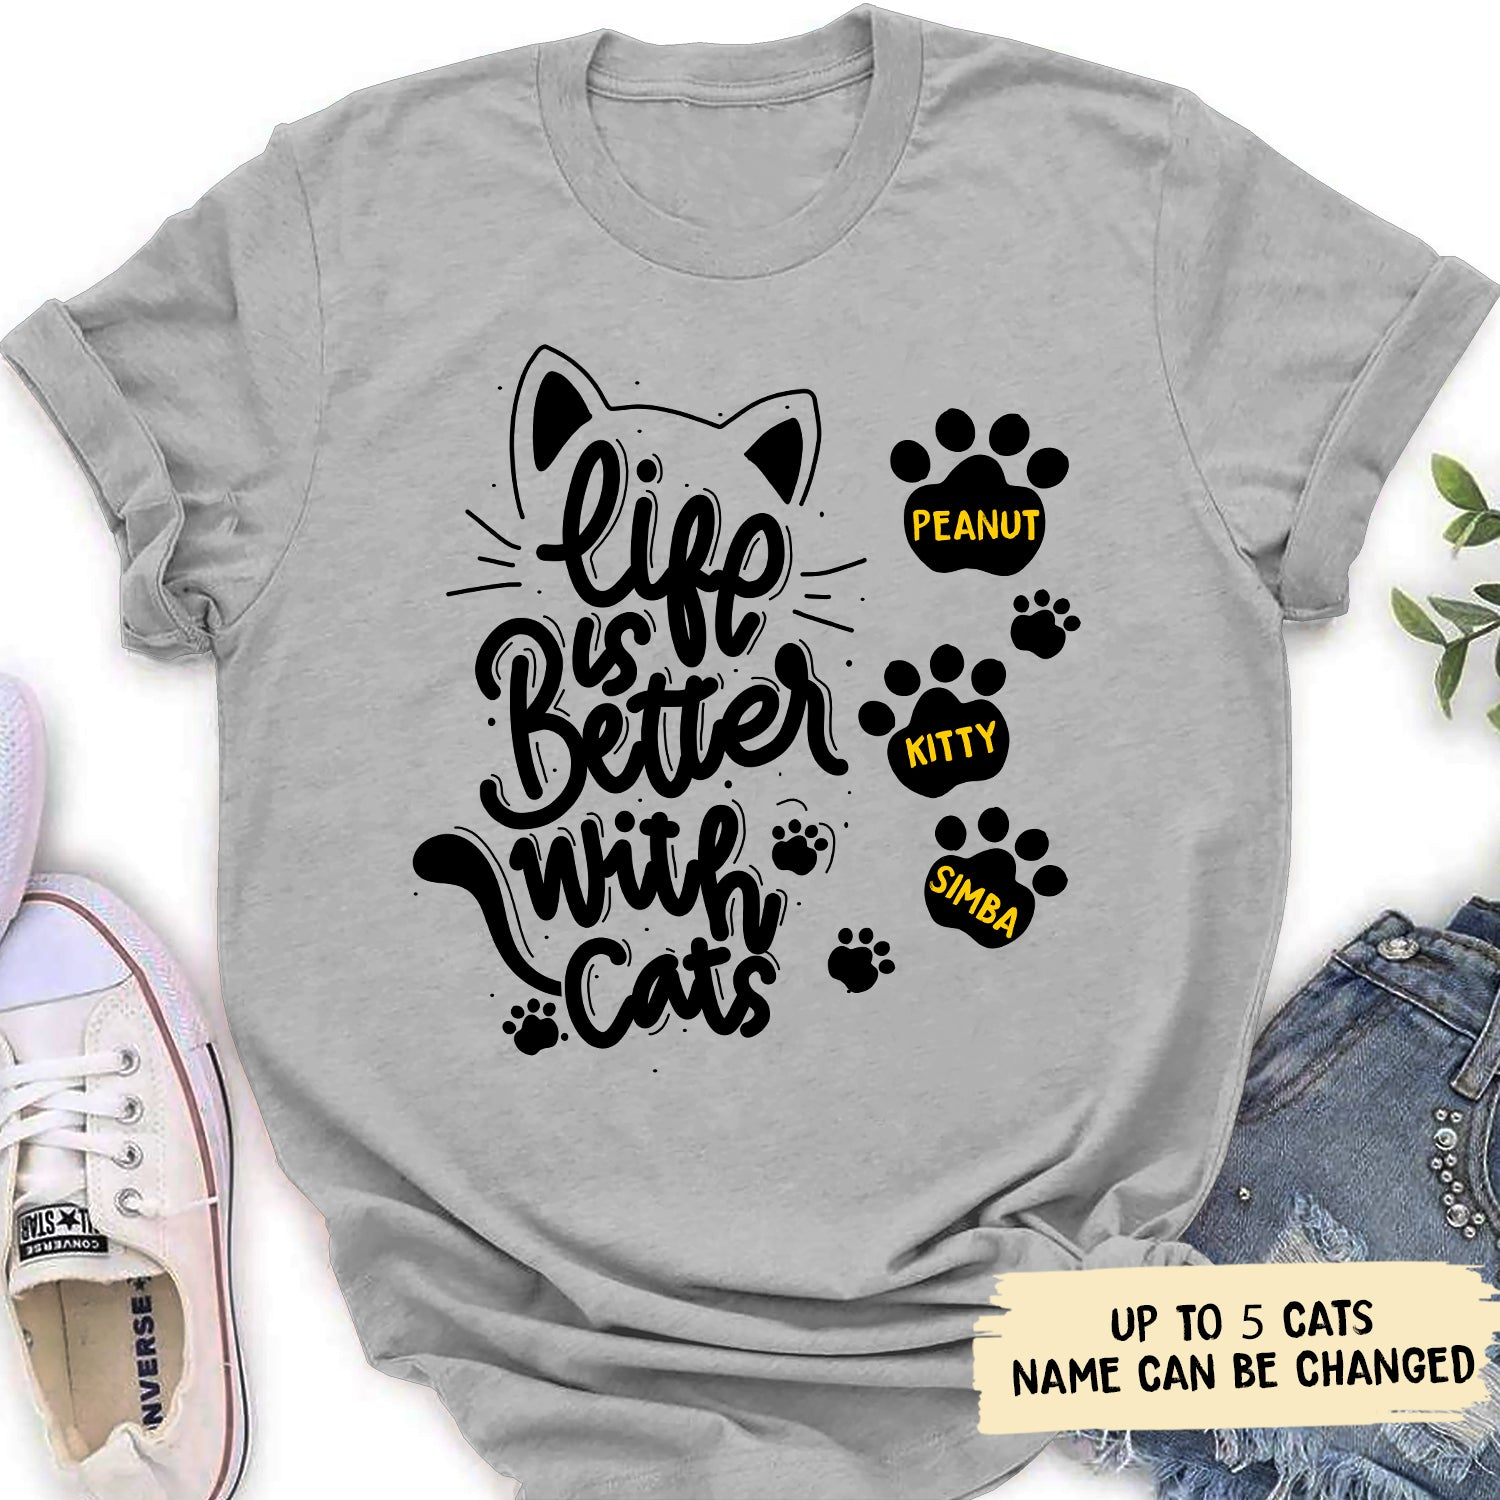 Life Is Better With Cats - Personalized Custom Women's T-shirt - Gifts For Cat Lovers